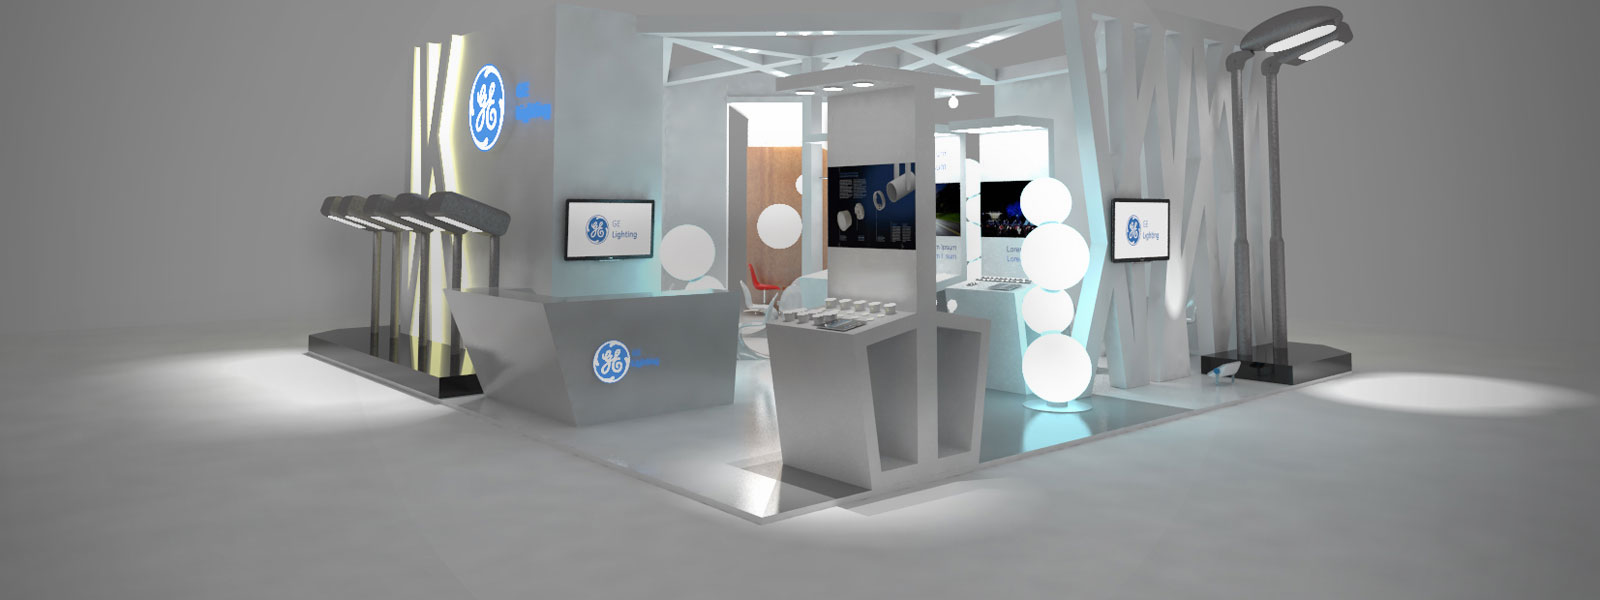 GE Lighting showcase energy-efficient lighting at Light Middle East, Dubai